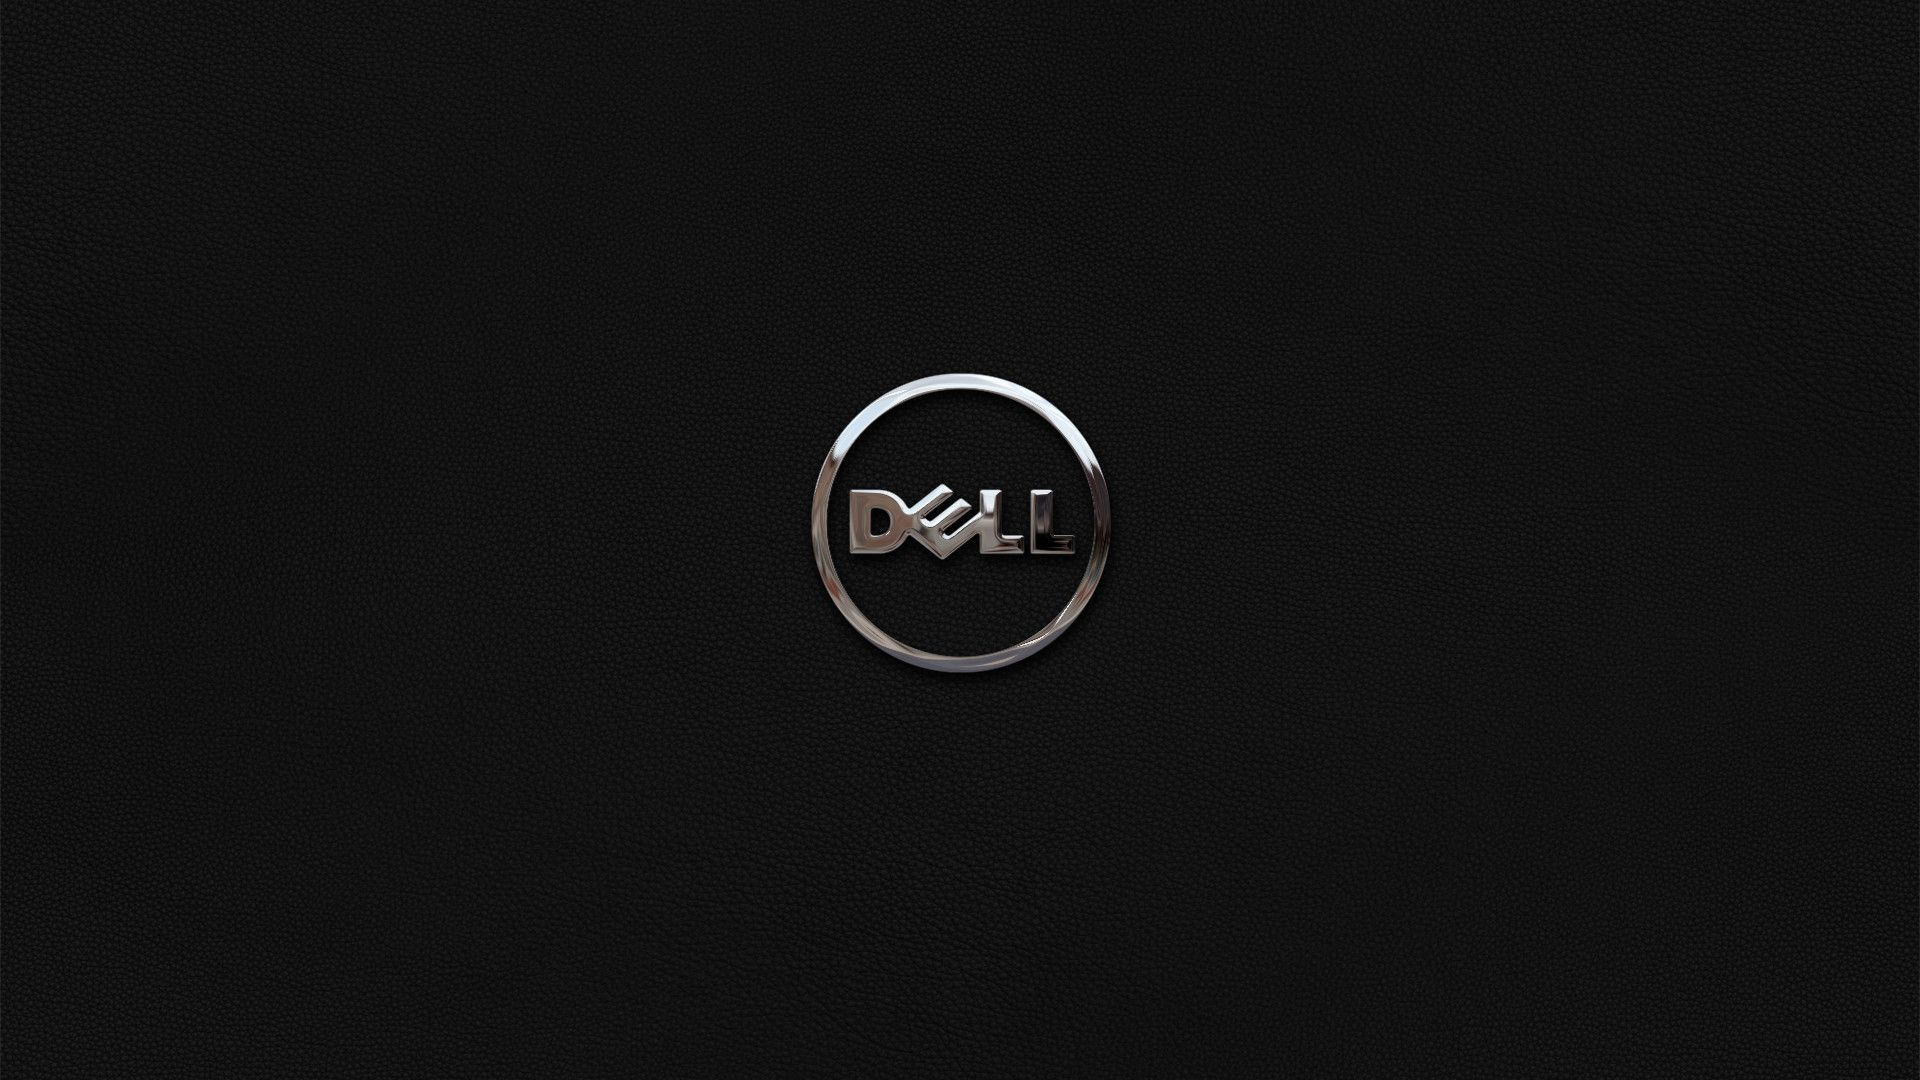 Dell 4k wallpapers top free dell 4k backgrounds - 4k wallpaper for dell laptop ...